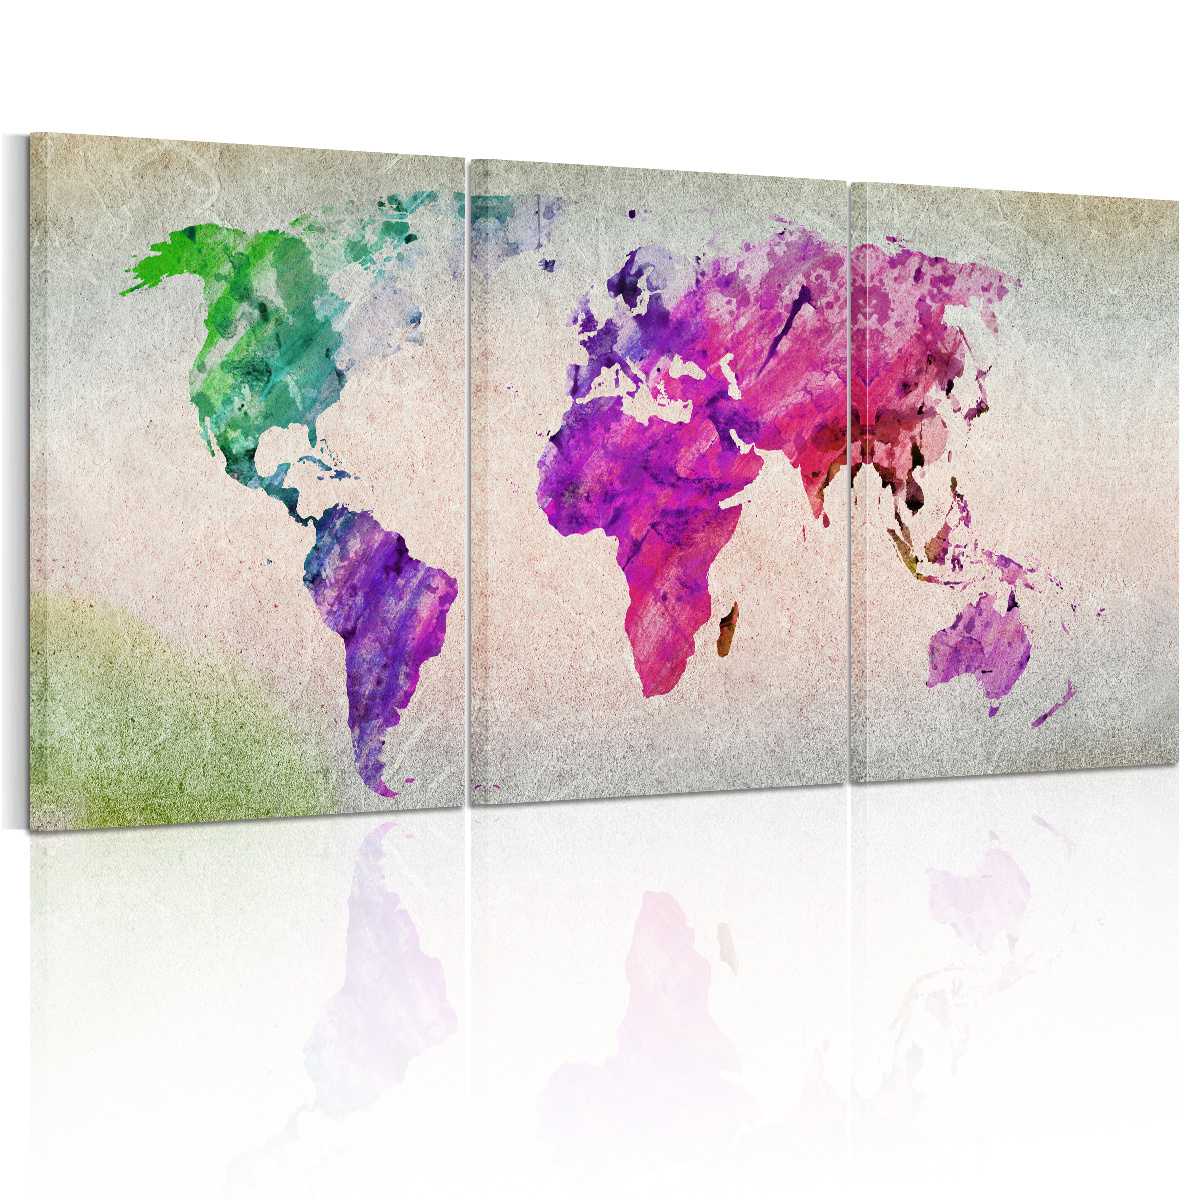 Modern Framed Ready To Hang HD Canvas Prints Picture Wall Art Painting World Map